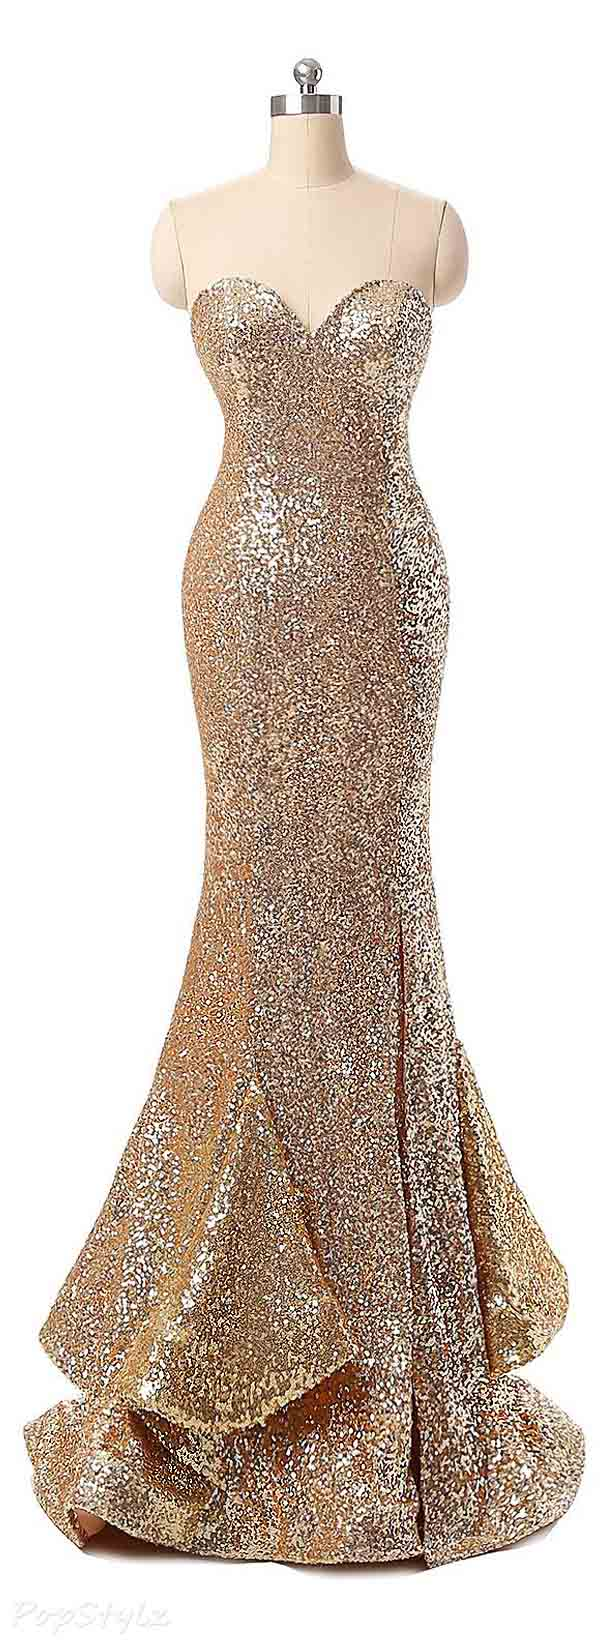 Fanciest Sweetheart Sequin Mermaid Evening Gown